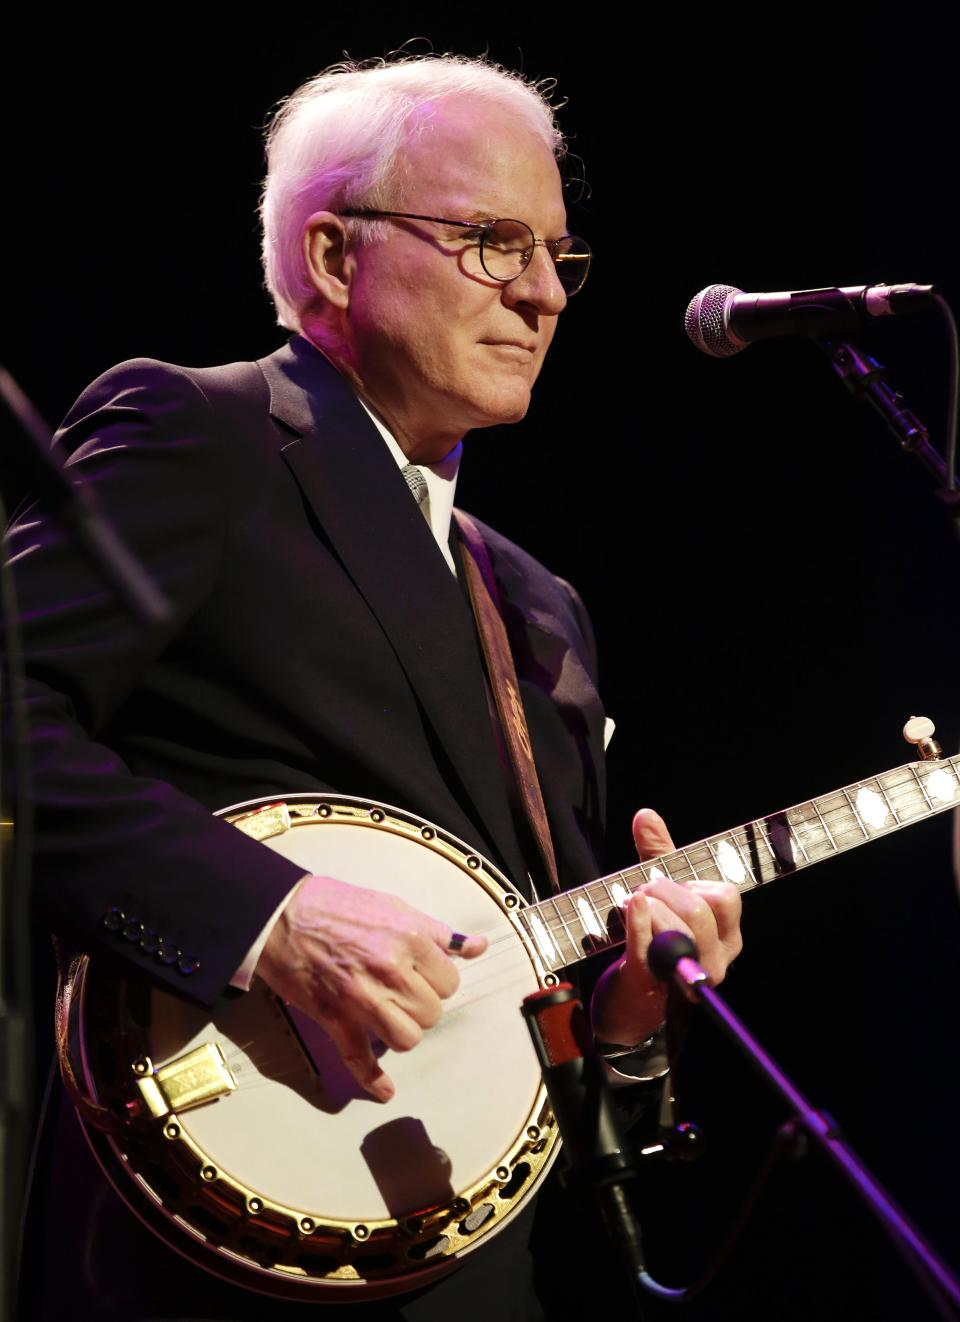 Steve Martin and the Steep Canyon Rangers perform at the International Bluegrass Music Association Awards show on Thursday, Sept. 27, 2012, in Nashville, Tenn. (AP Photo/Mark Humphrey)